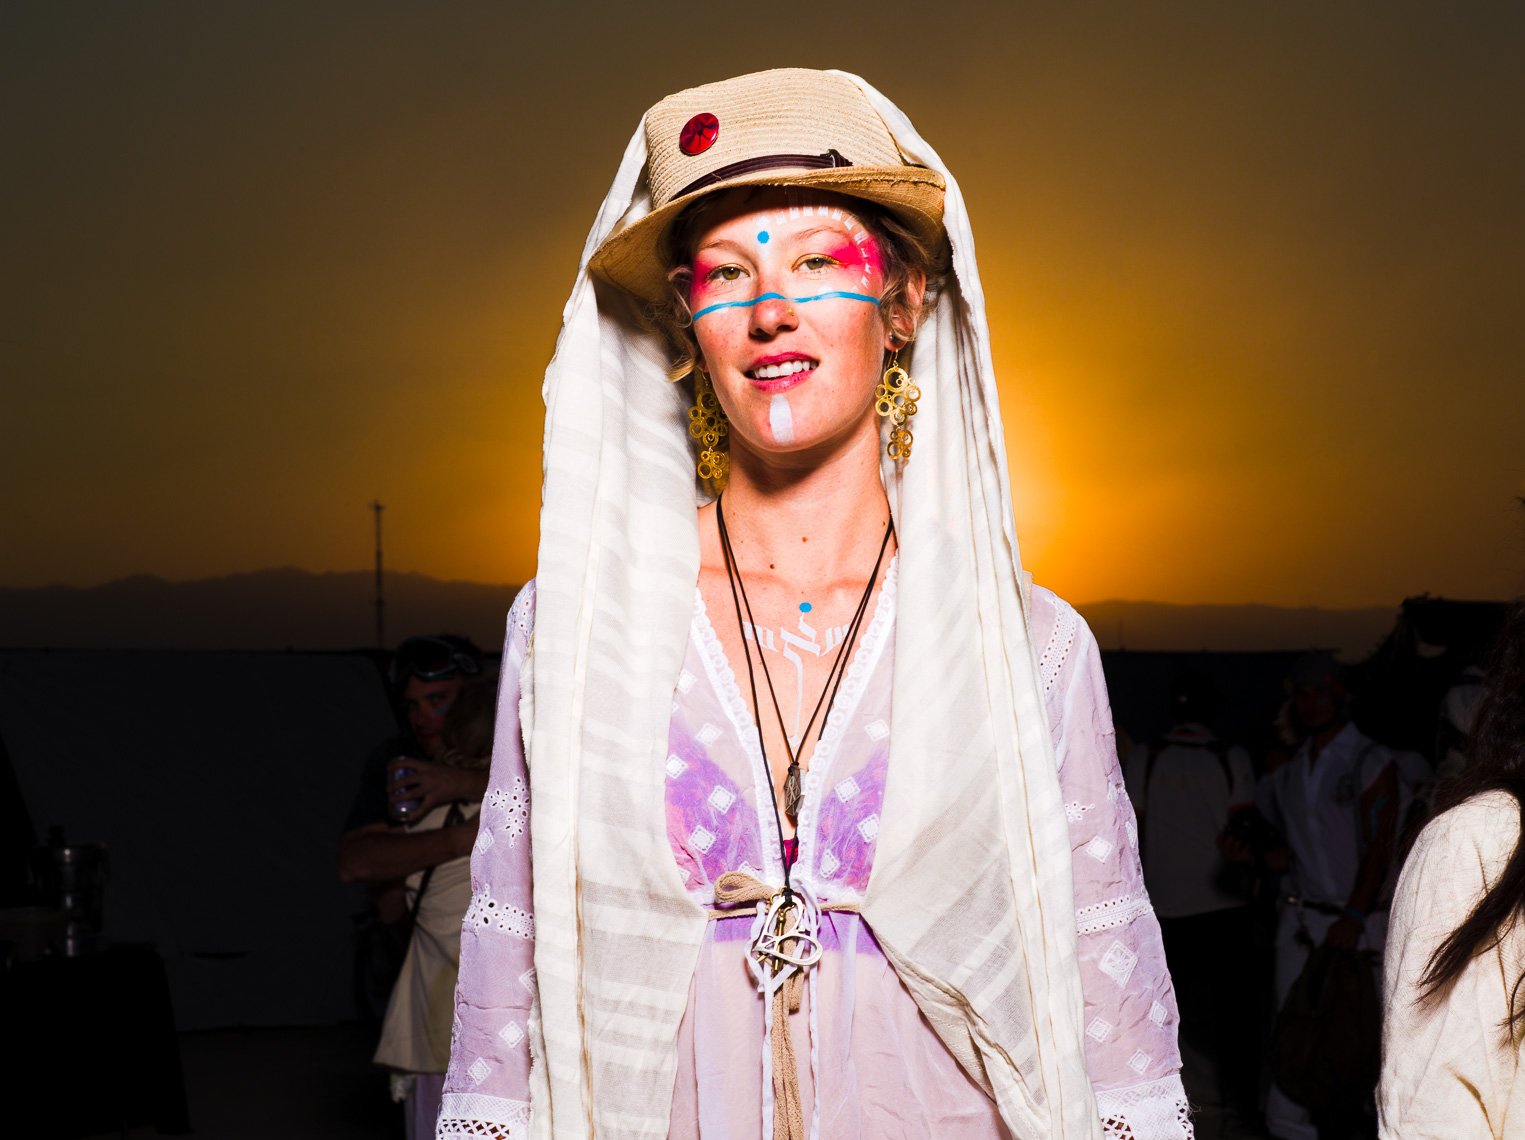 Eric_Schwabel-Burning Man 2013_008321-Edit